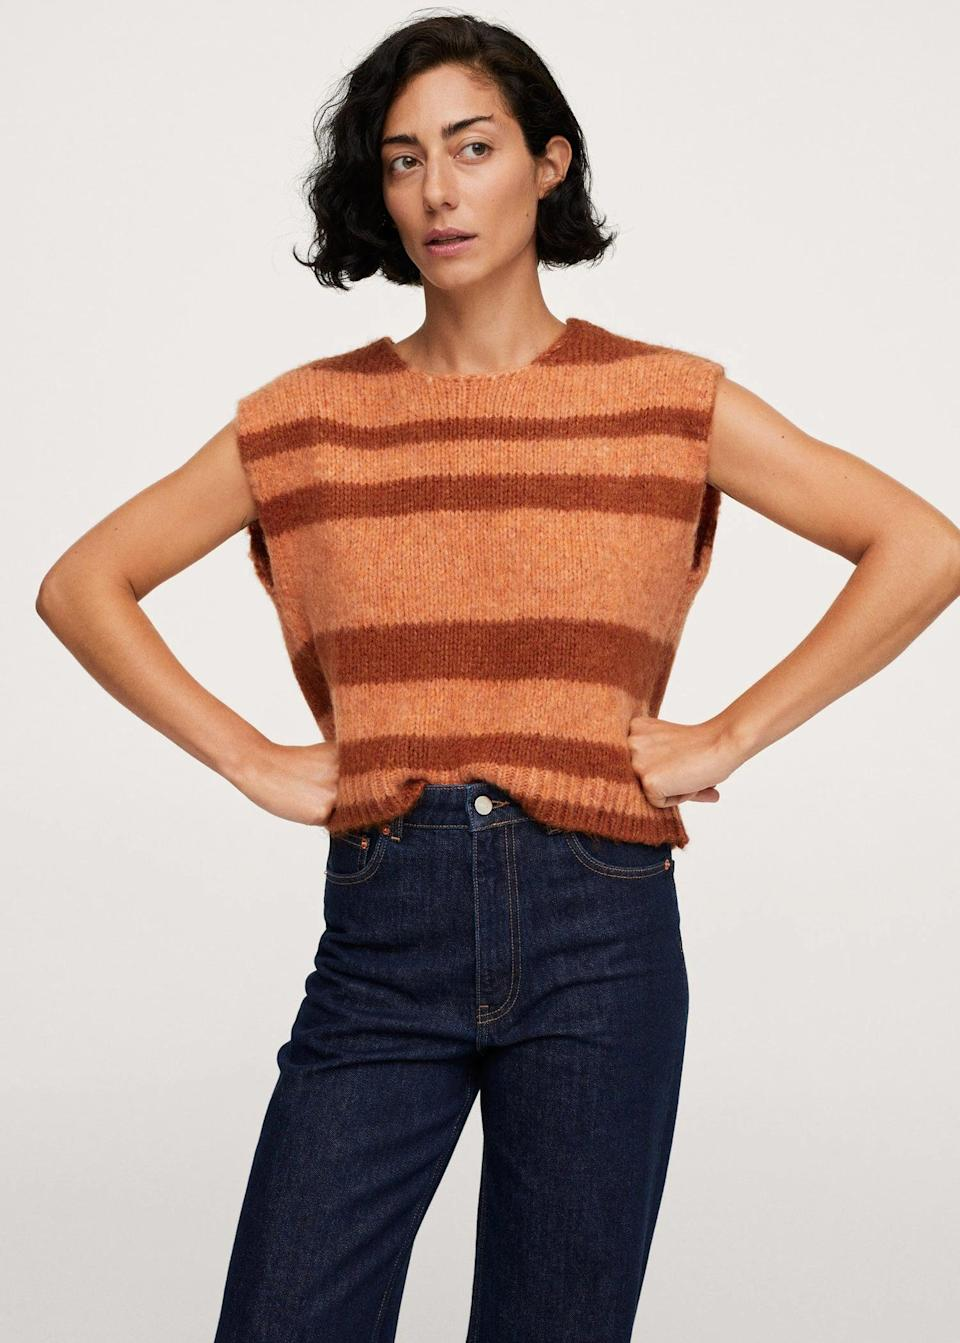 <p>This <span>Striped Knitted Vest</span> ($50) is casual yet polished enough to wear from the office to happy hour. Just swap the jeans for a miniskirt or leather pants.</p>